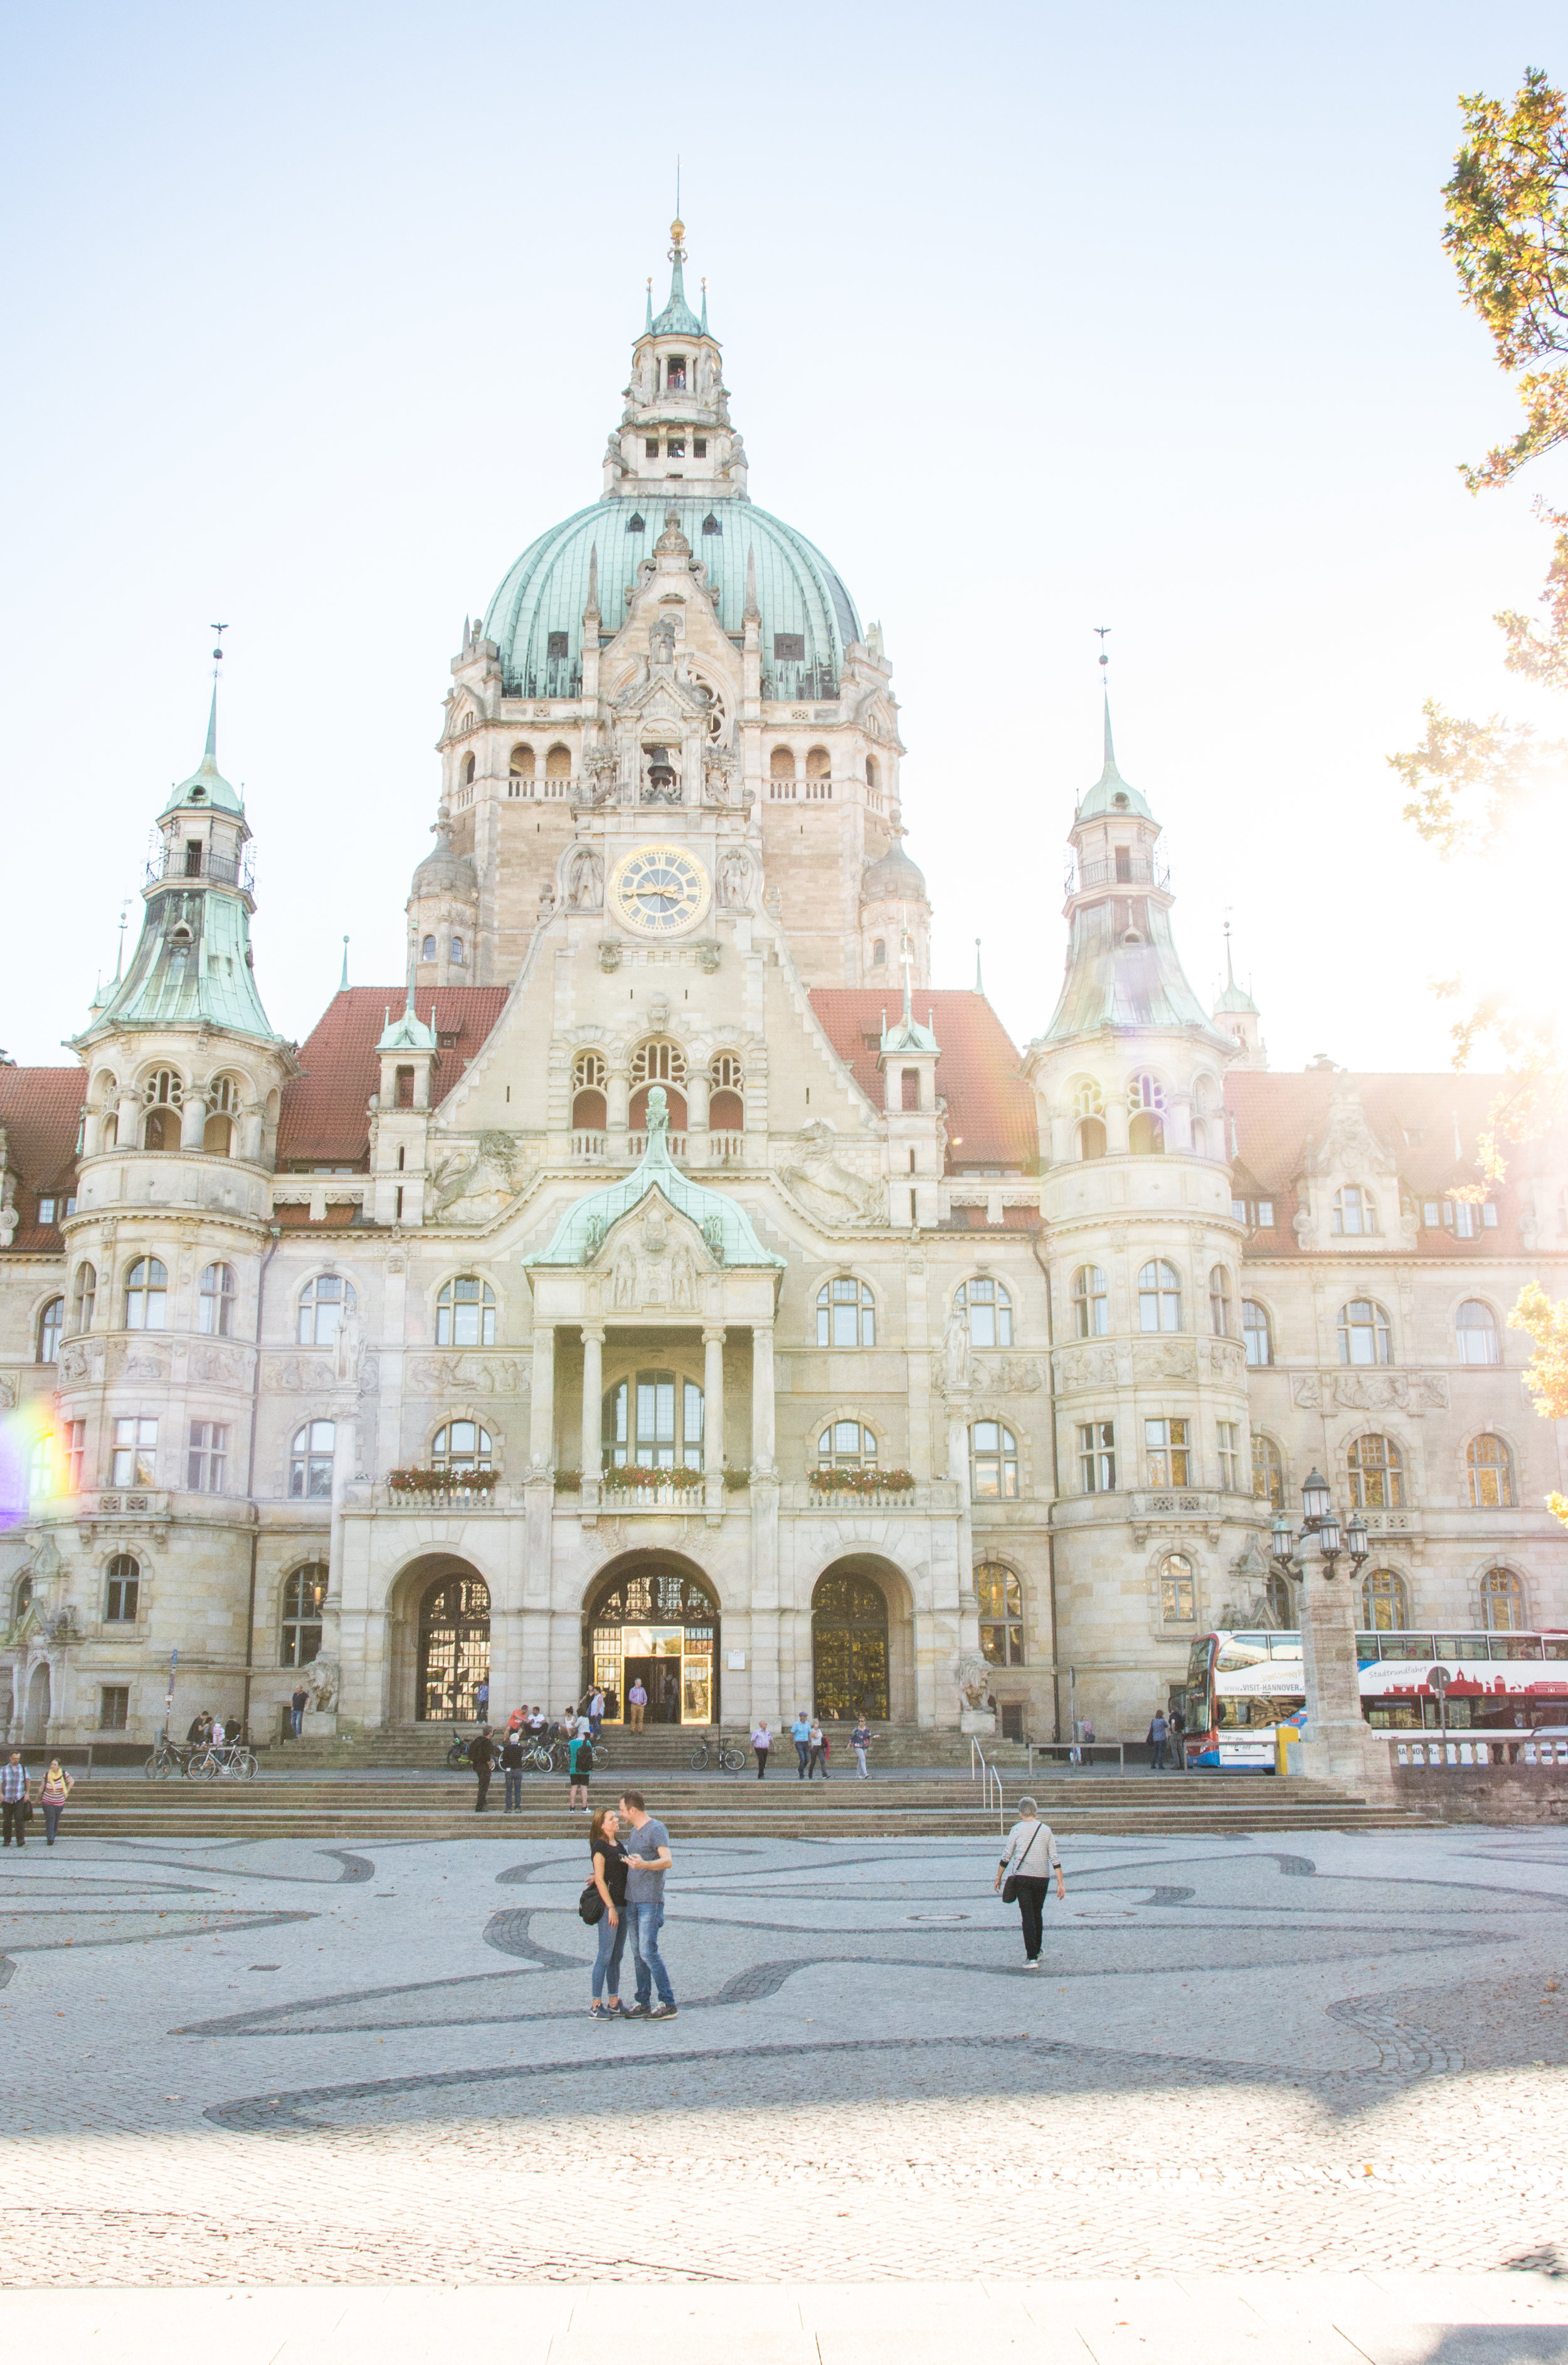 In front of Rathaus, Sunny day